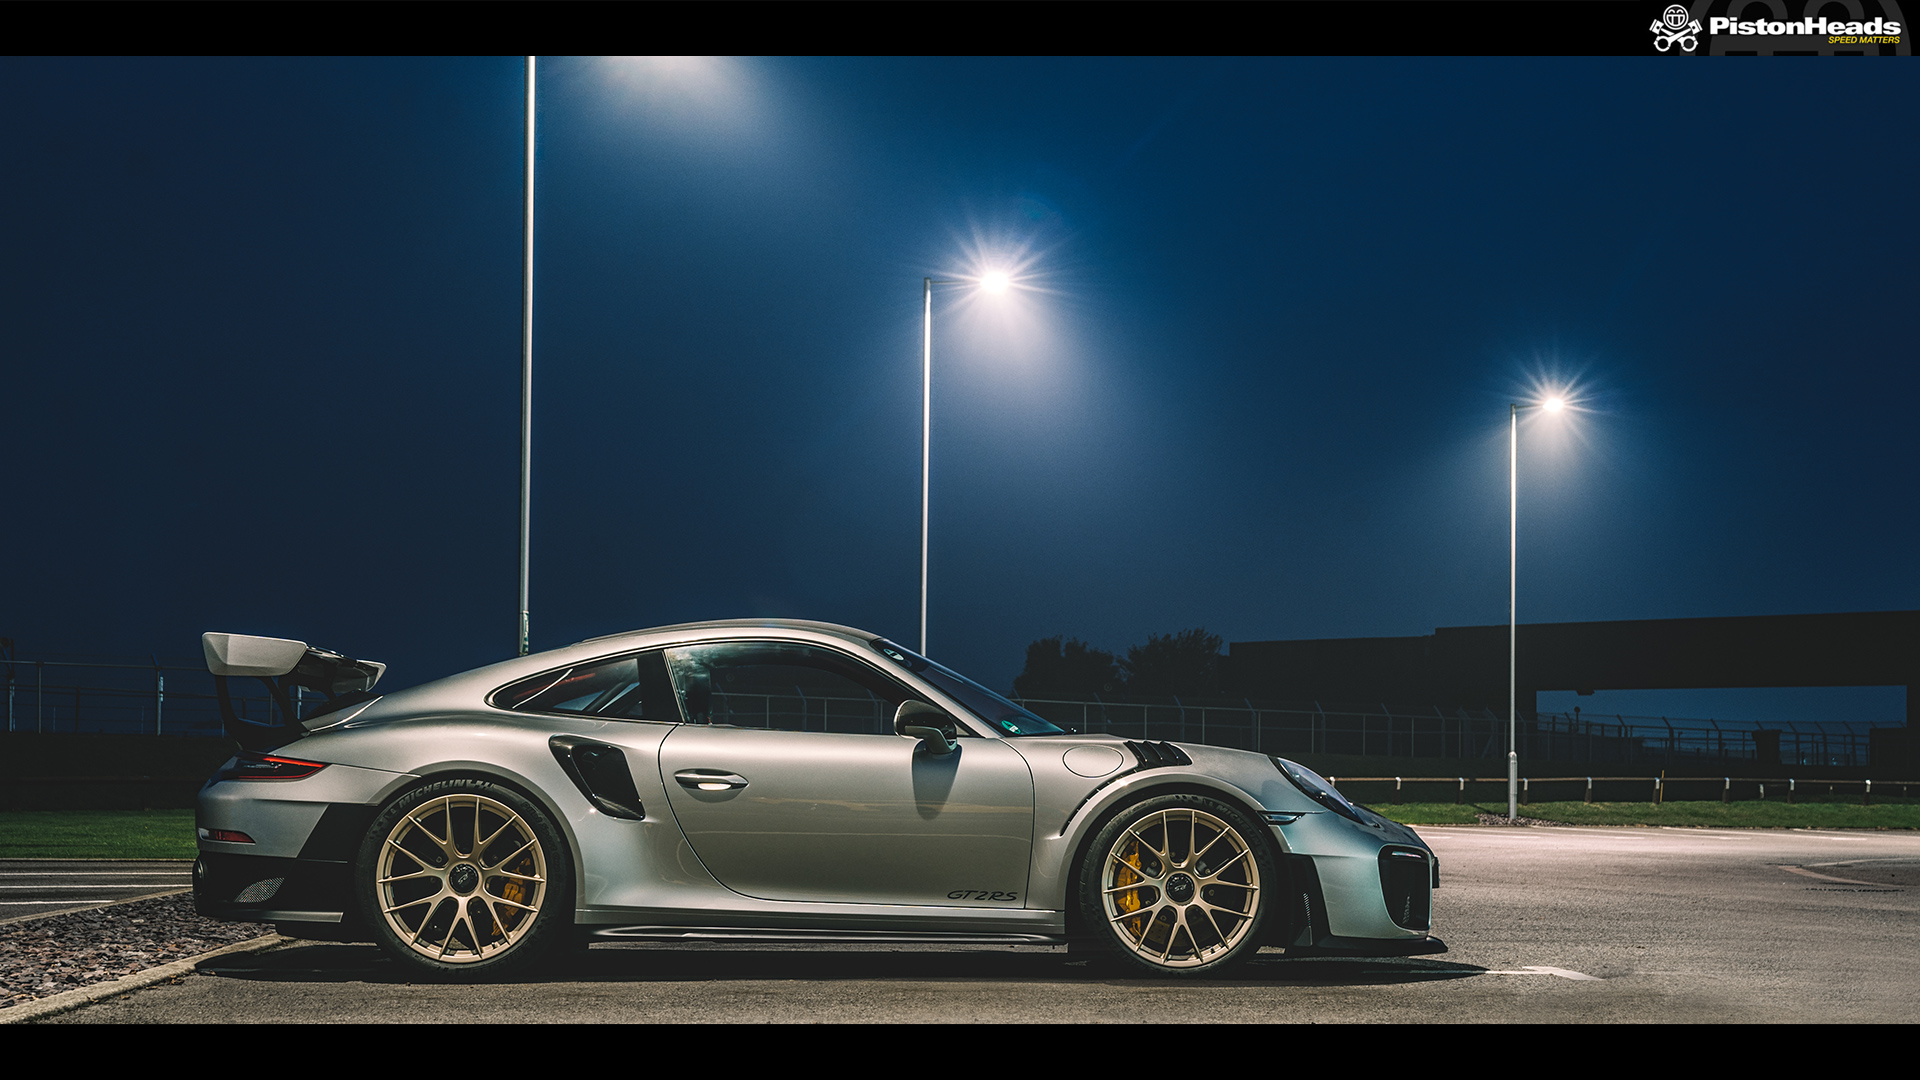 re porsche 911 gt2 rs pic of the week page 1 general gassing pistonheads. Black Bedroom Furniture Sets. Home Design Ideas